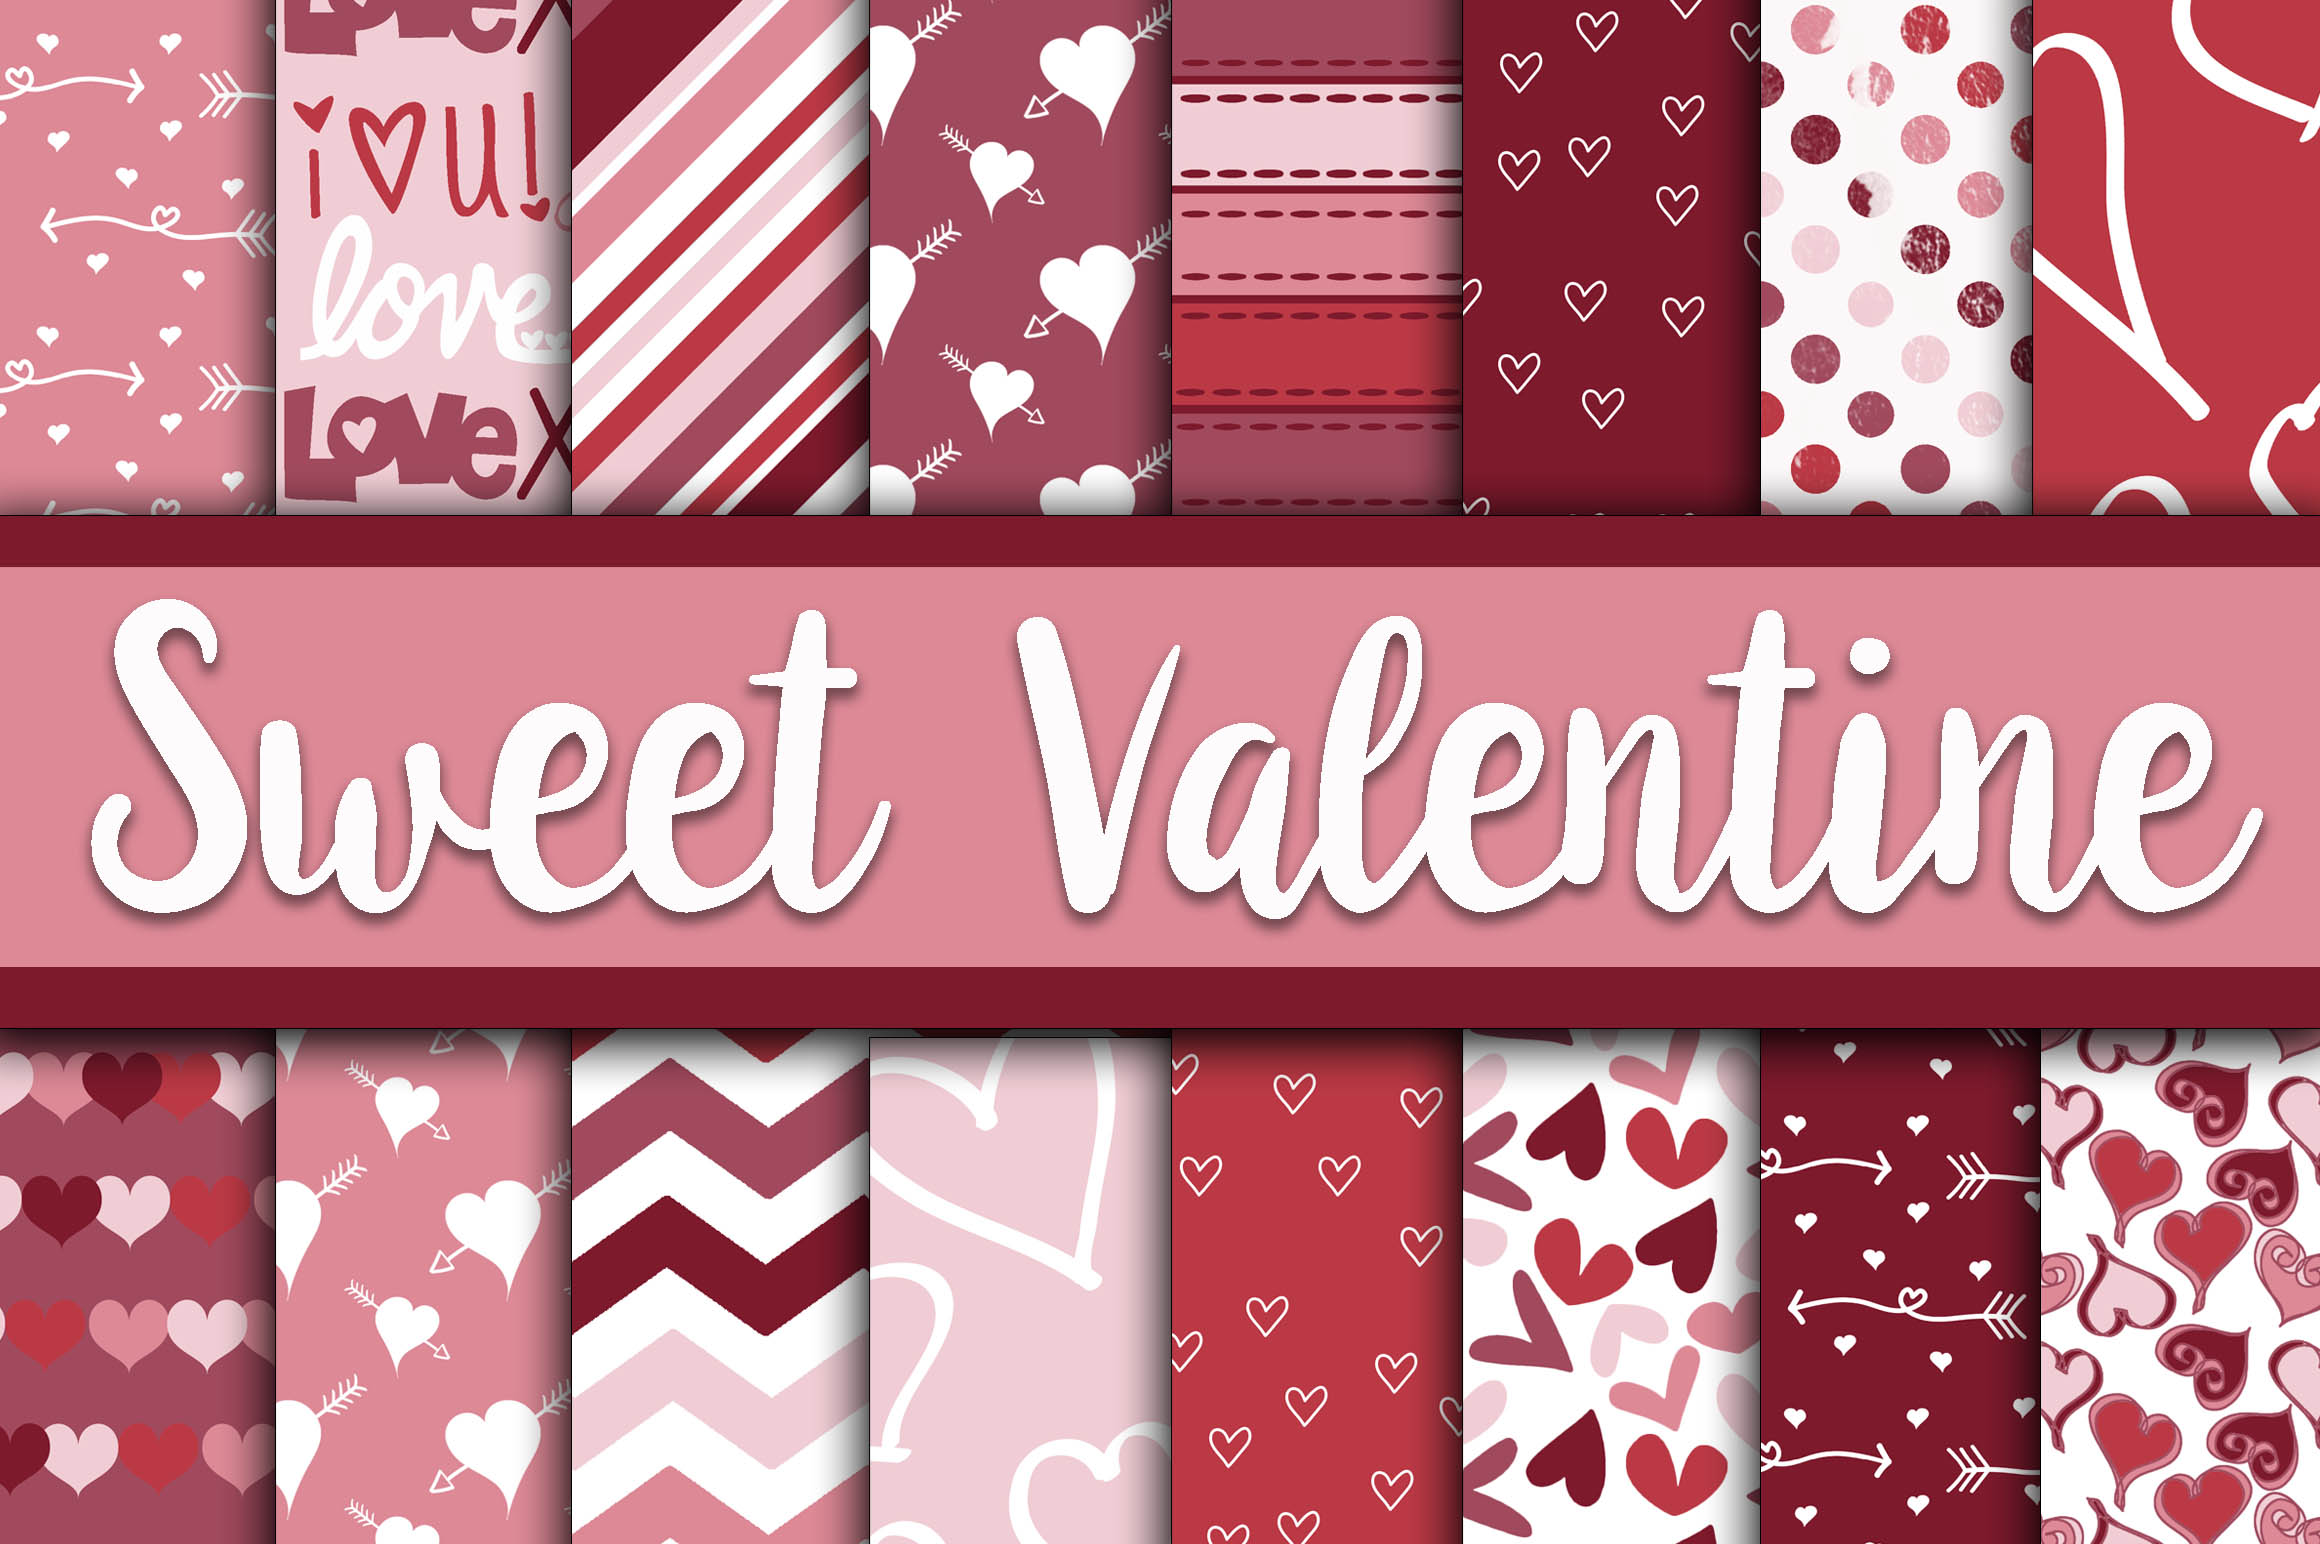 Download Free Sweet Valentine Digital Paper Graphic By Oldmarketdesigns for Cricut Explore, Silhouette and other cutting machines.